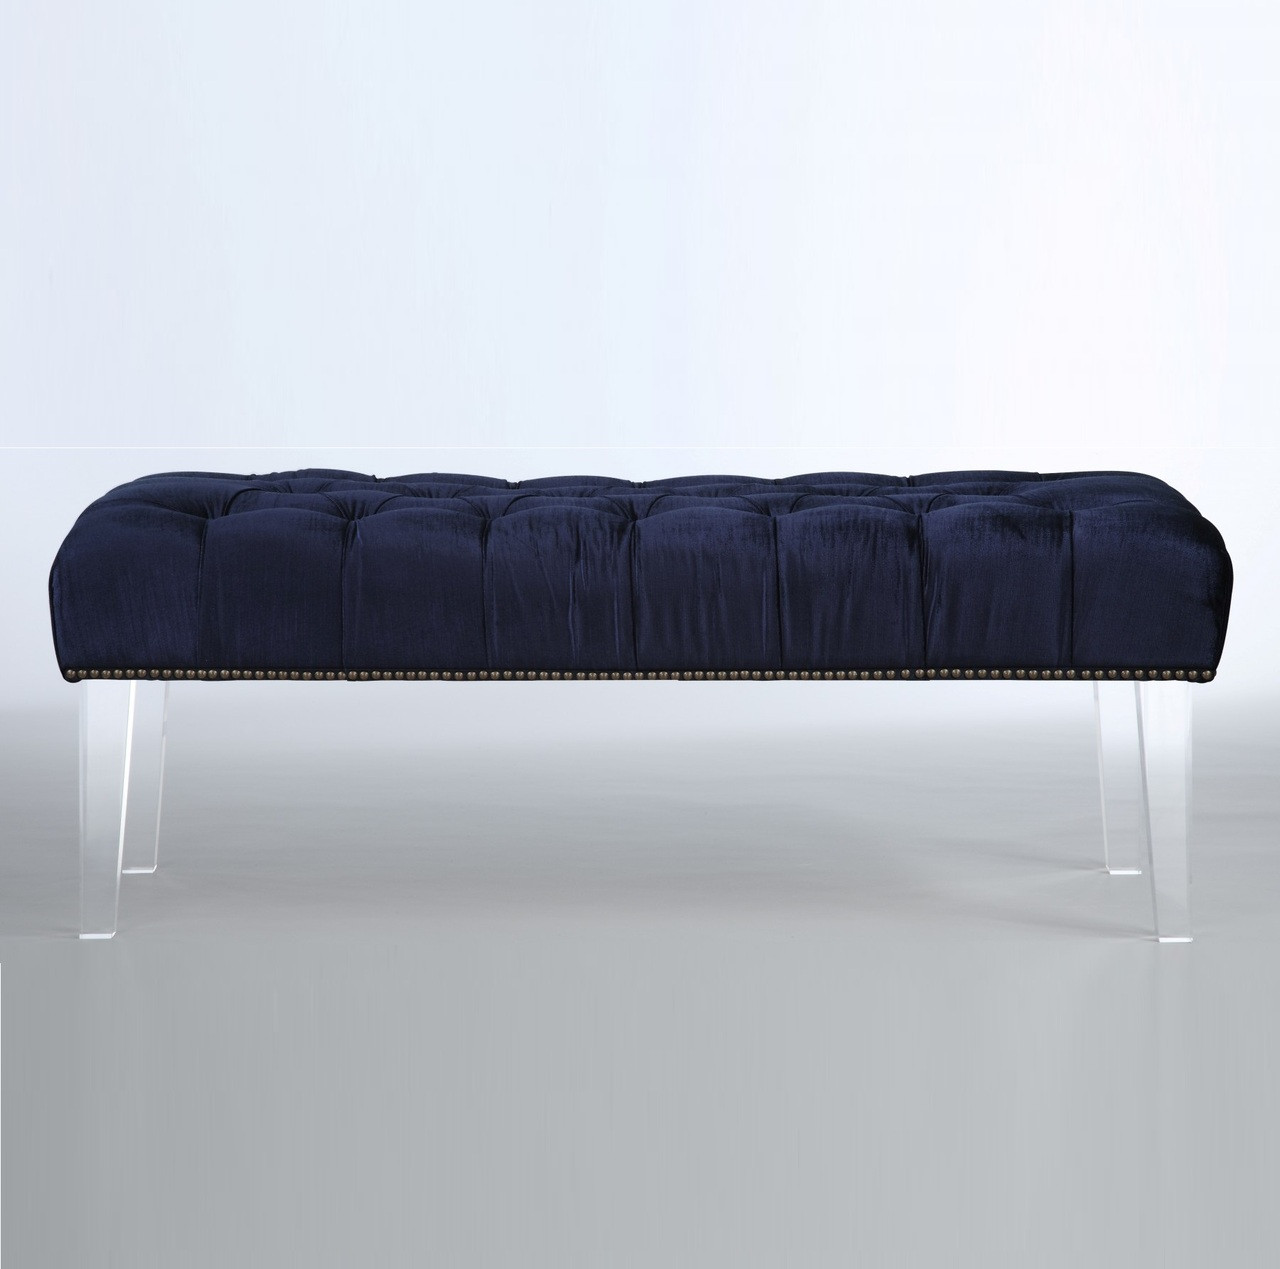 stella navy velvet upholstered acrylic bed end bench - Acrylic Bench